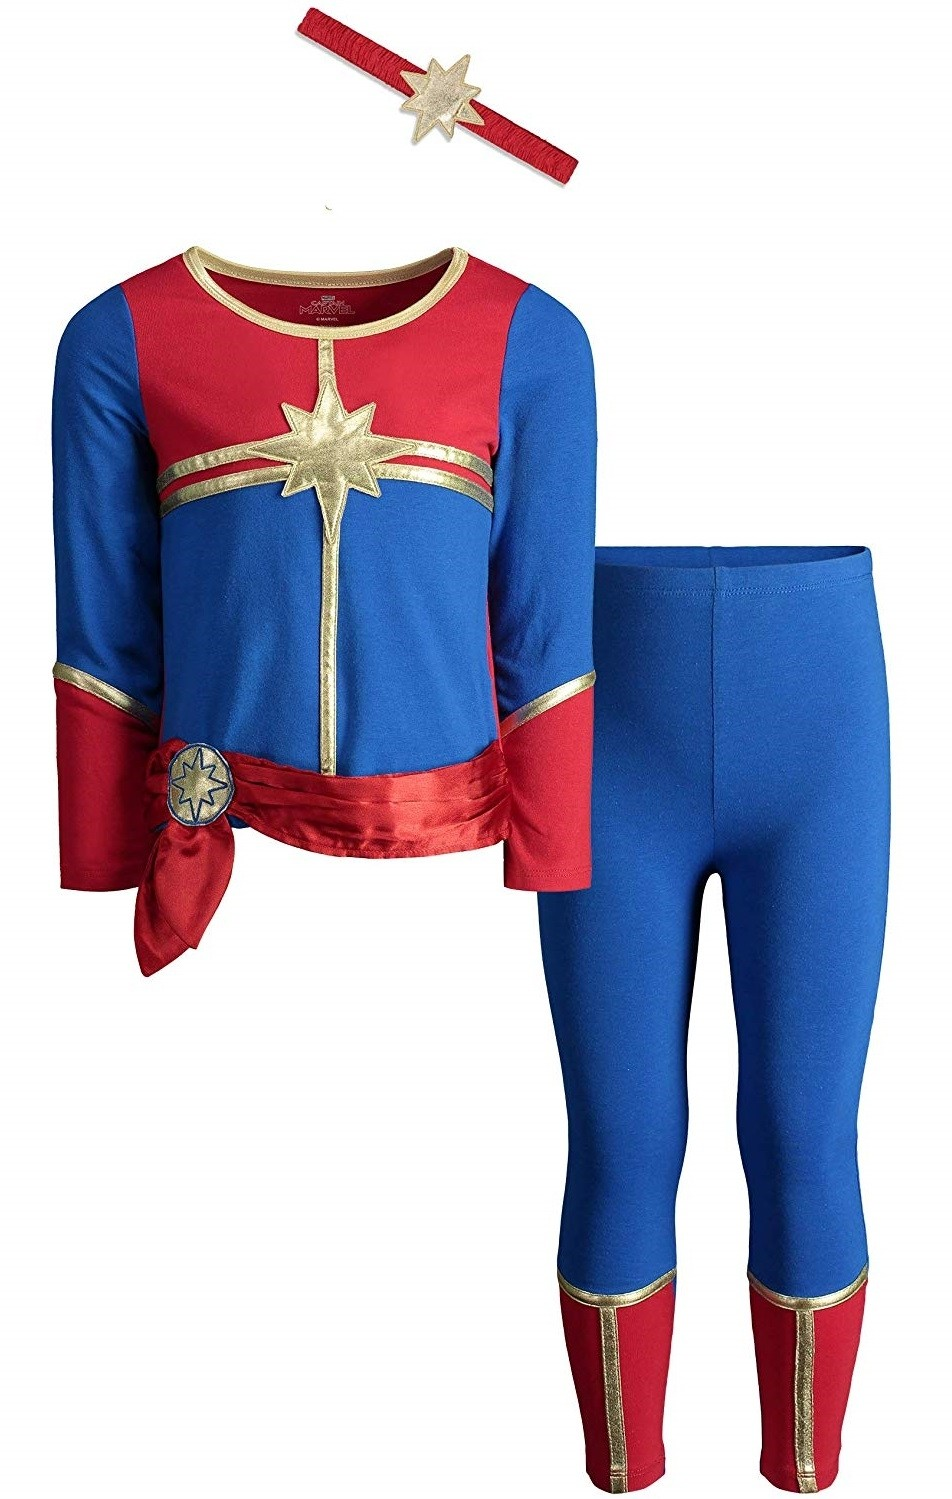 Captain Marvel Toddler Costume A Mighty Girl Shop for your favorite avengers costumes, clothes, toys, collectibles, home decor, movies & more. captain marvel toddler costume a